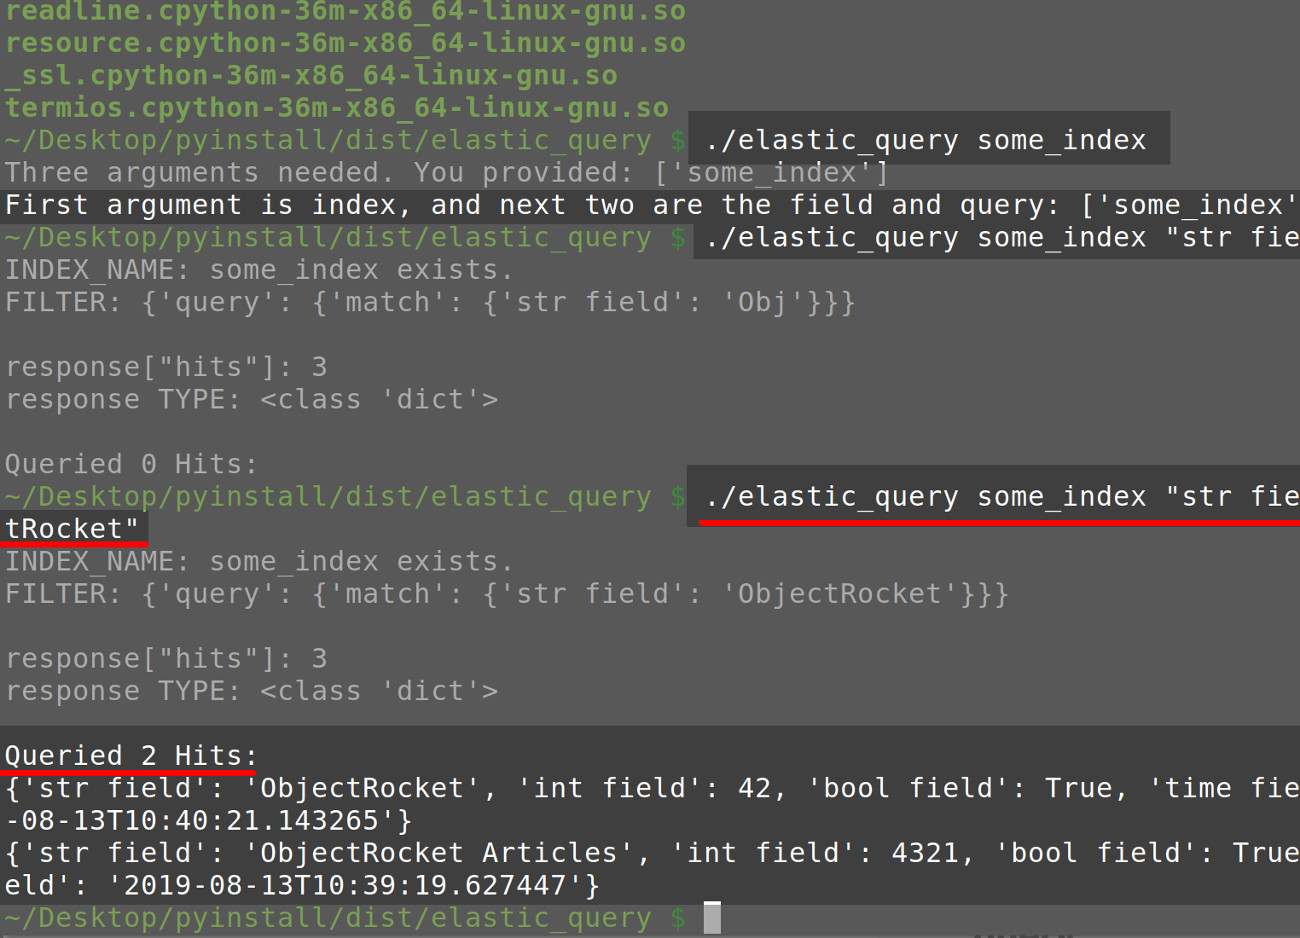 Screenshot of a terminal printing the results of an Elasticsearch query request made using a PyInstaller application